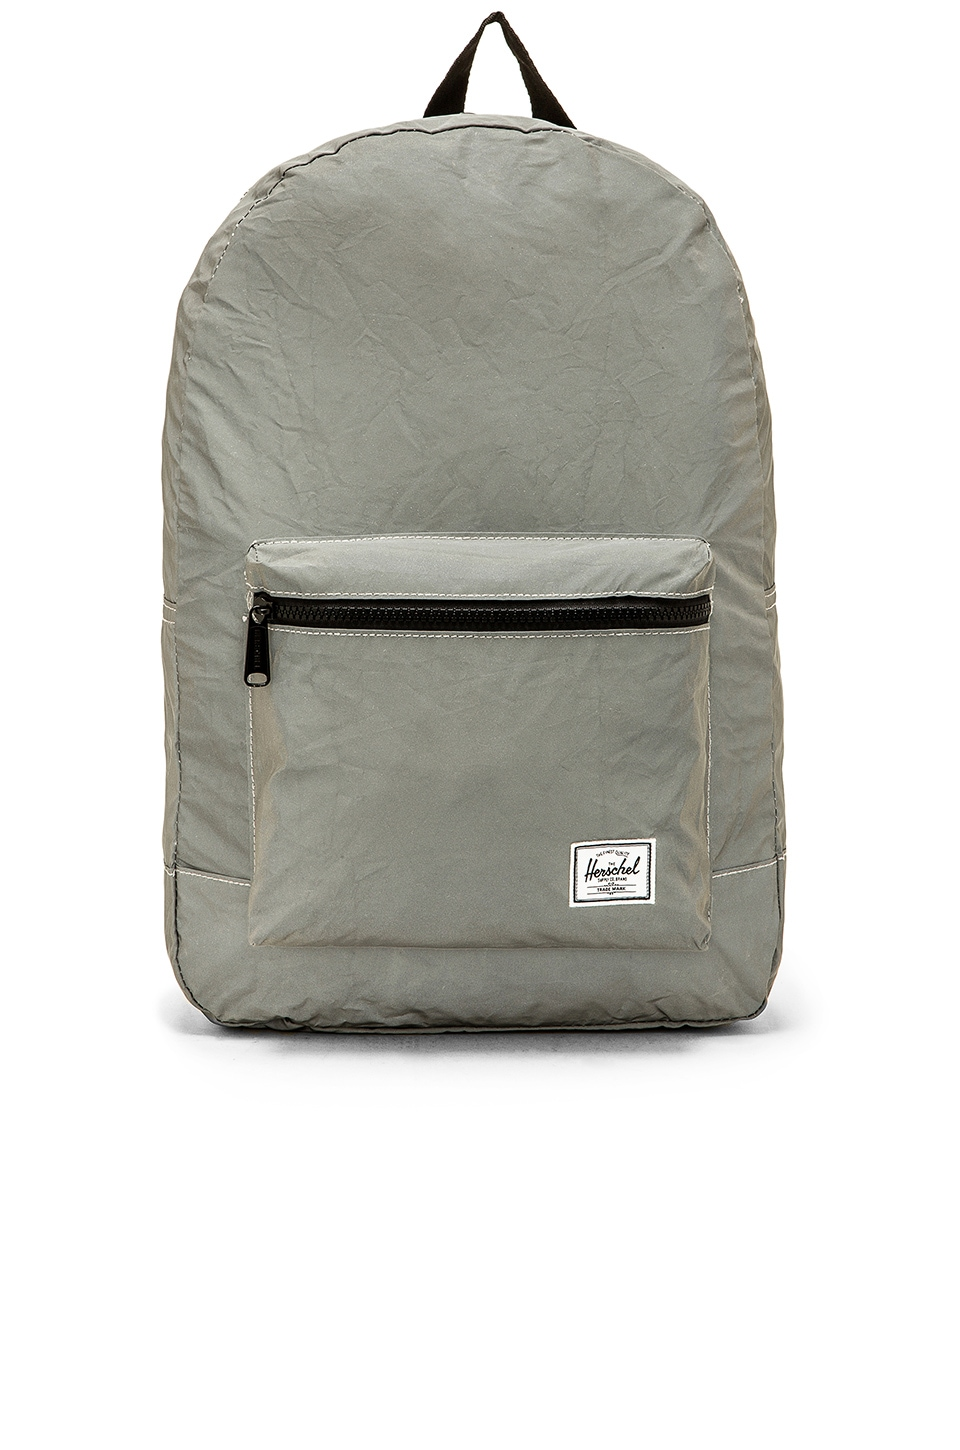 Herschel Supply Co. 3M Day   Night Collection Packable Daypack in Silver  Reflective 932652e46a179